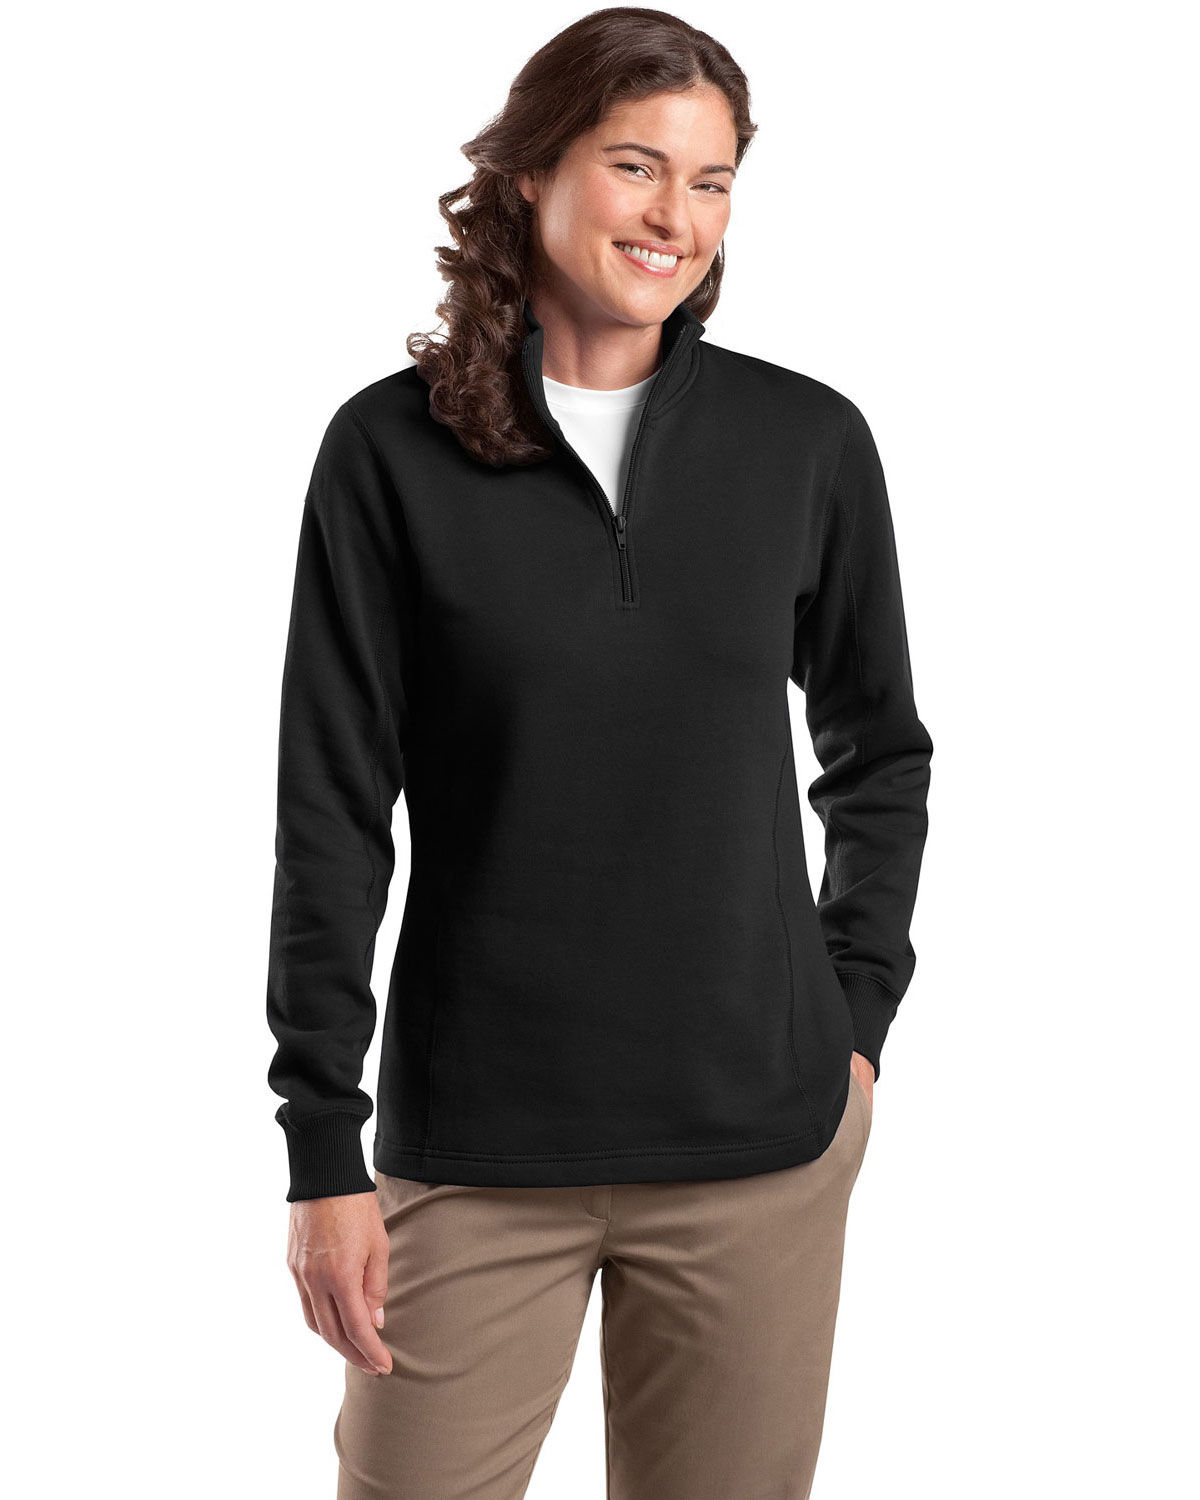 Womens Fleece Jackets & Quarter Zip Pullovers - GotApparel